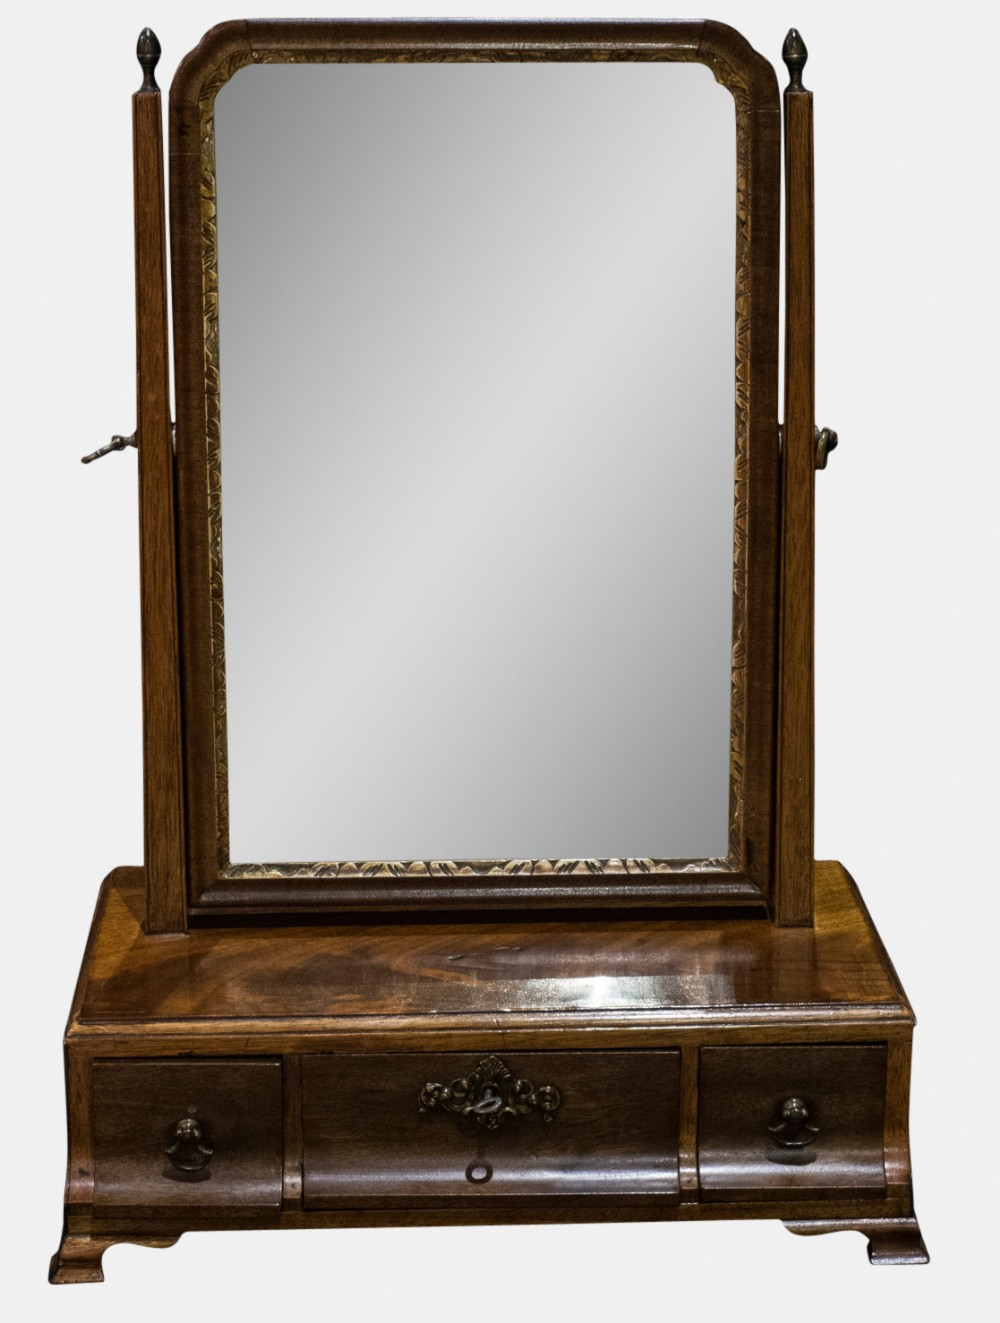 Dressing table mirror sellingantiques